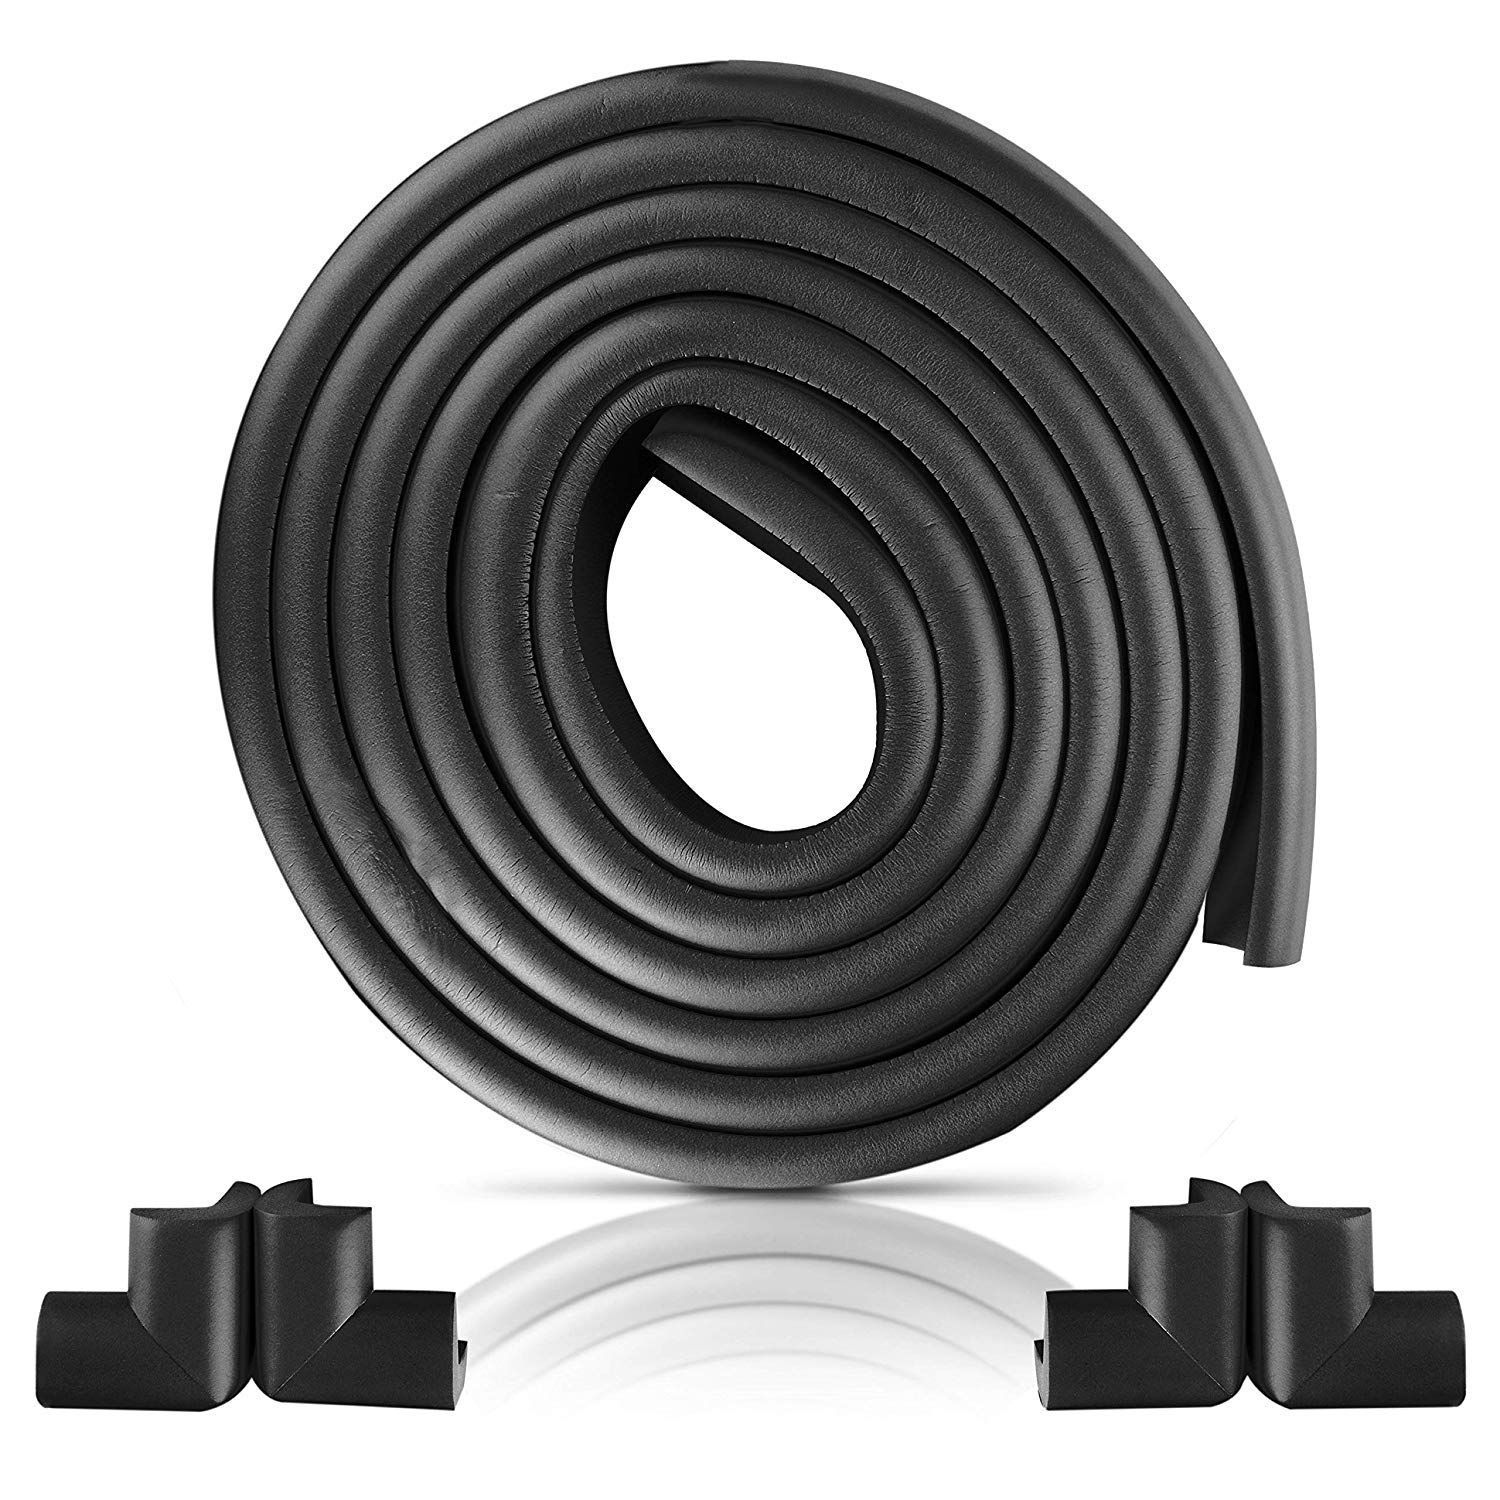 NEW Furniture Edge and Corner Guards   16.2ft Protective Foam Cushion   15ft Bumper 4 Adhesive Childsafe Corners   Baby Child Proofing Foam Set and Safe for Table   Fireplace   Countertop   Black